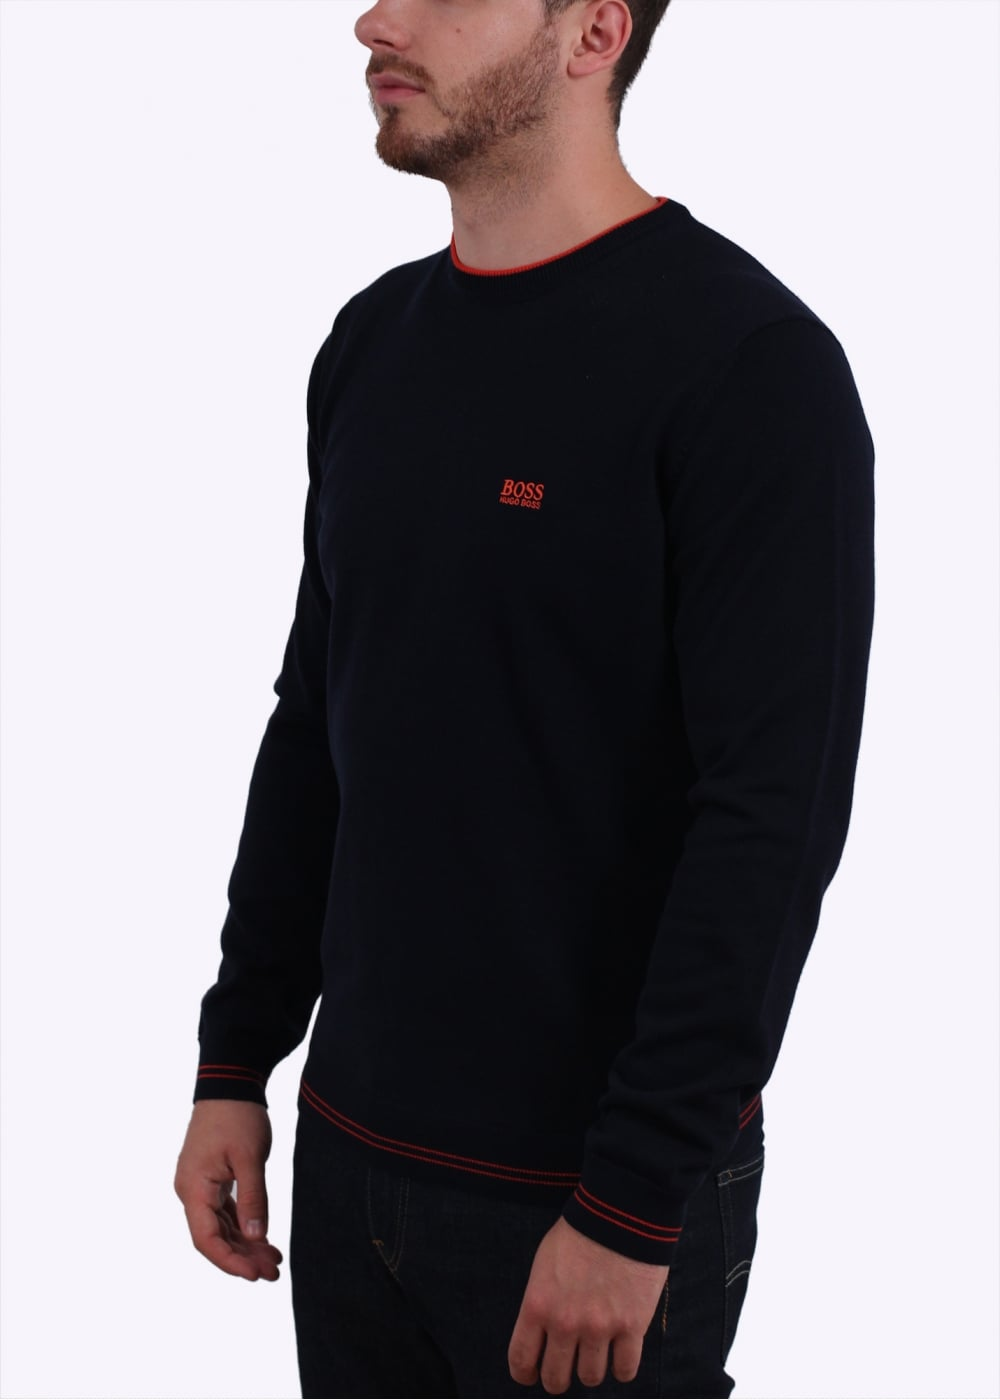 hugo boss green rime sweater navy hugo boss green from triads uk. Black Bedroom Furniture Sets. Home Design Ideas